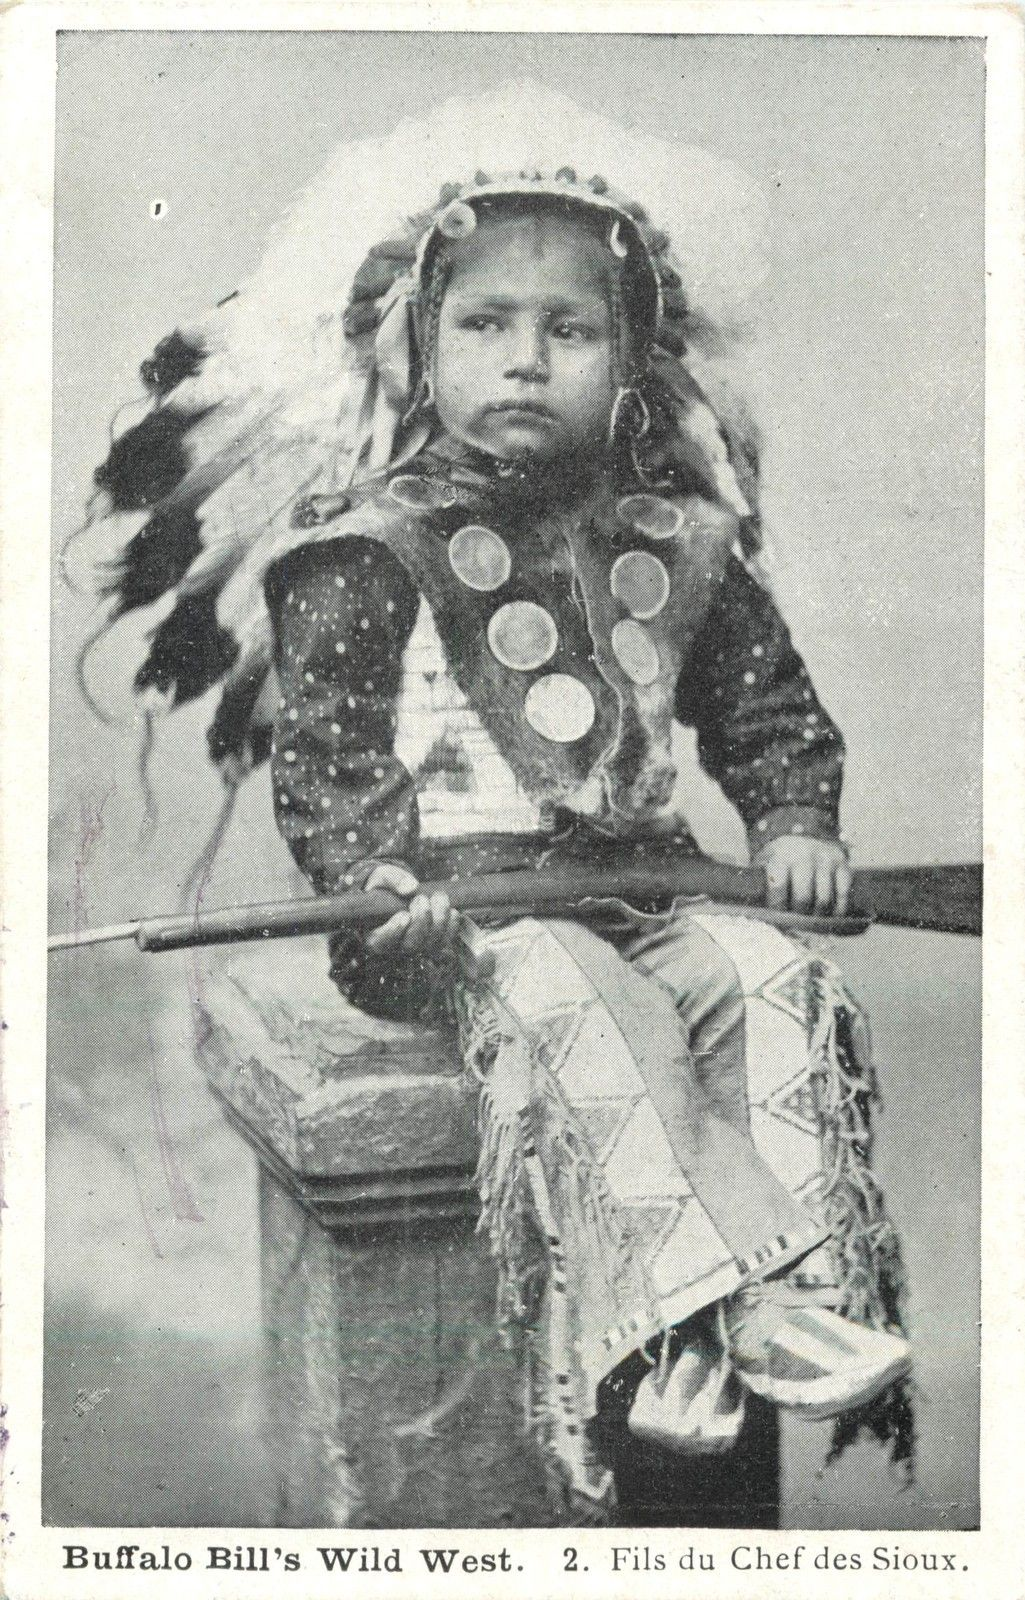 Buffalo Bill's Wild West Show Sioux Child with Rifle